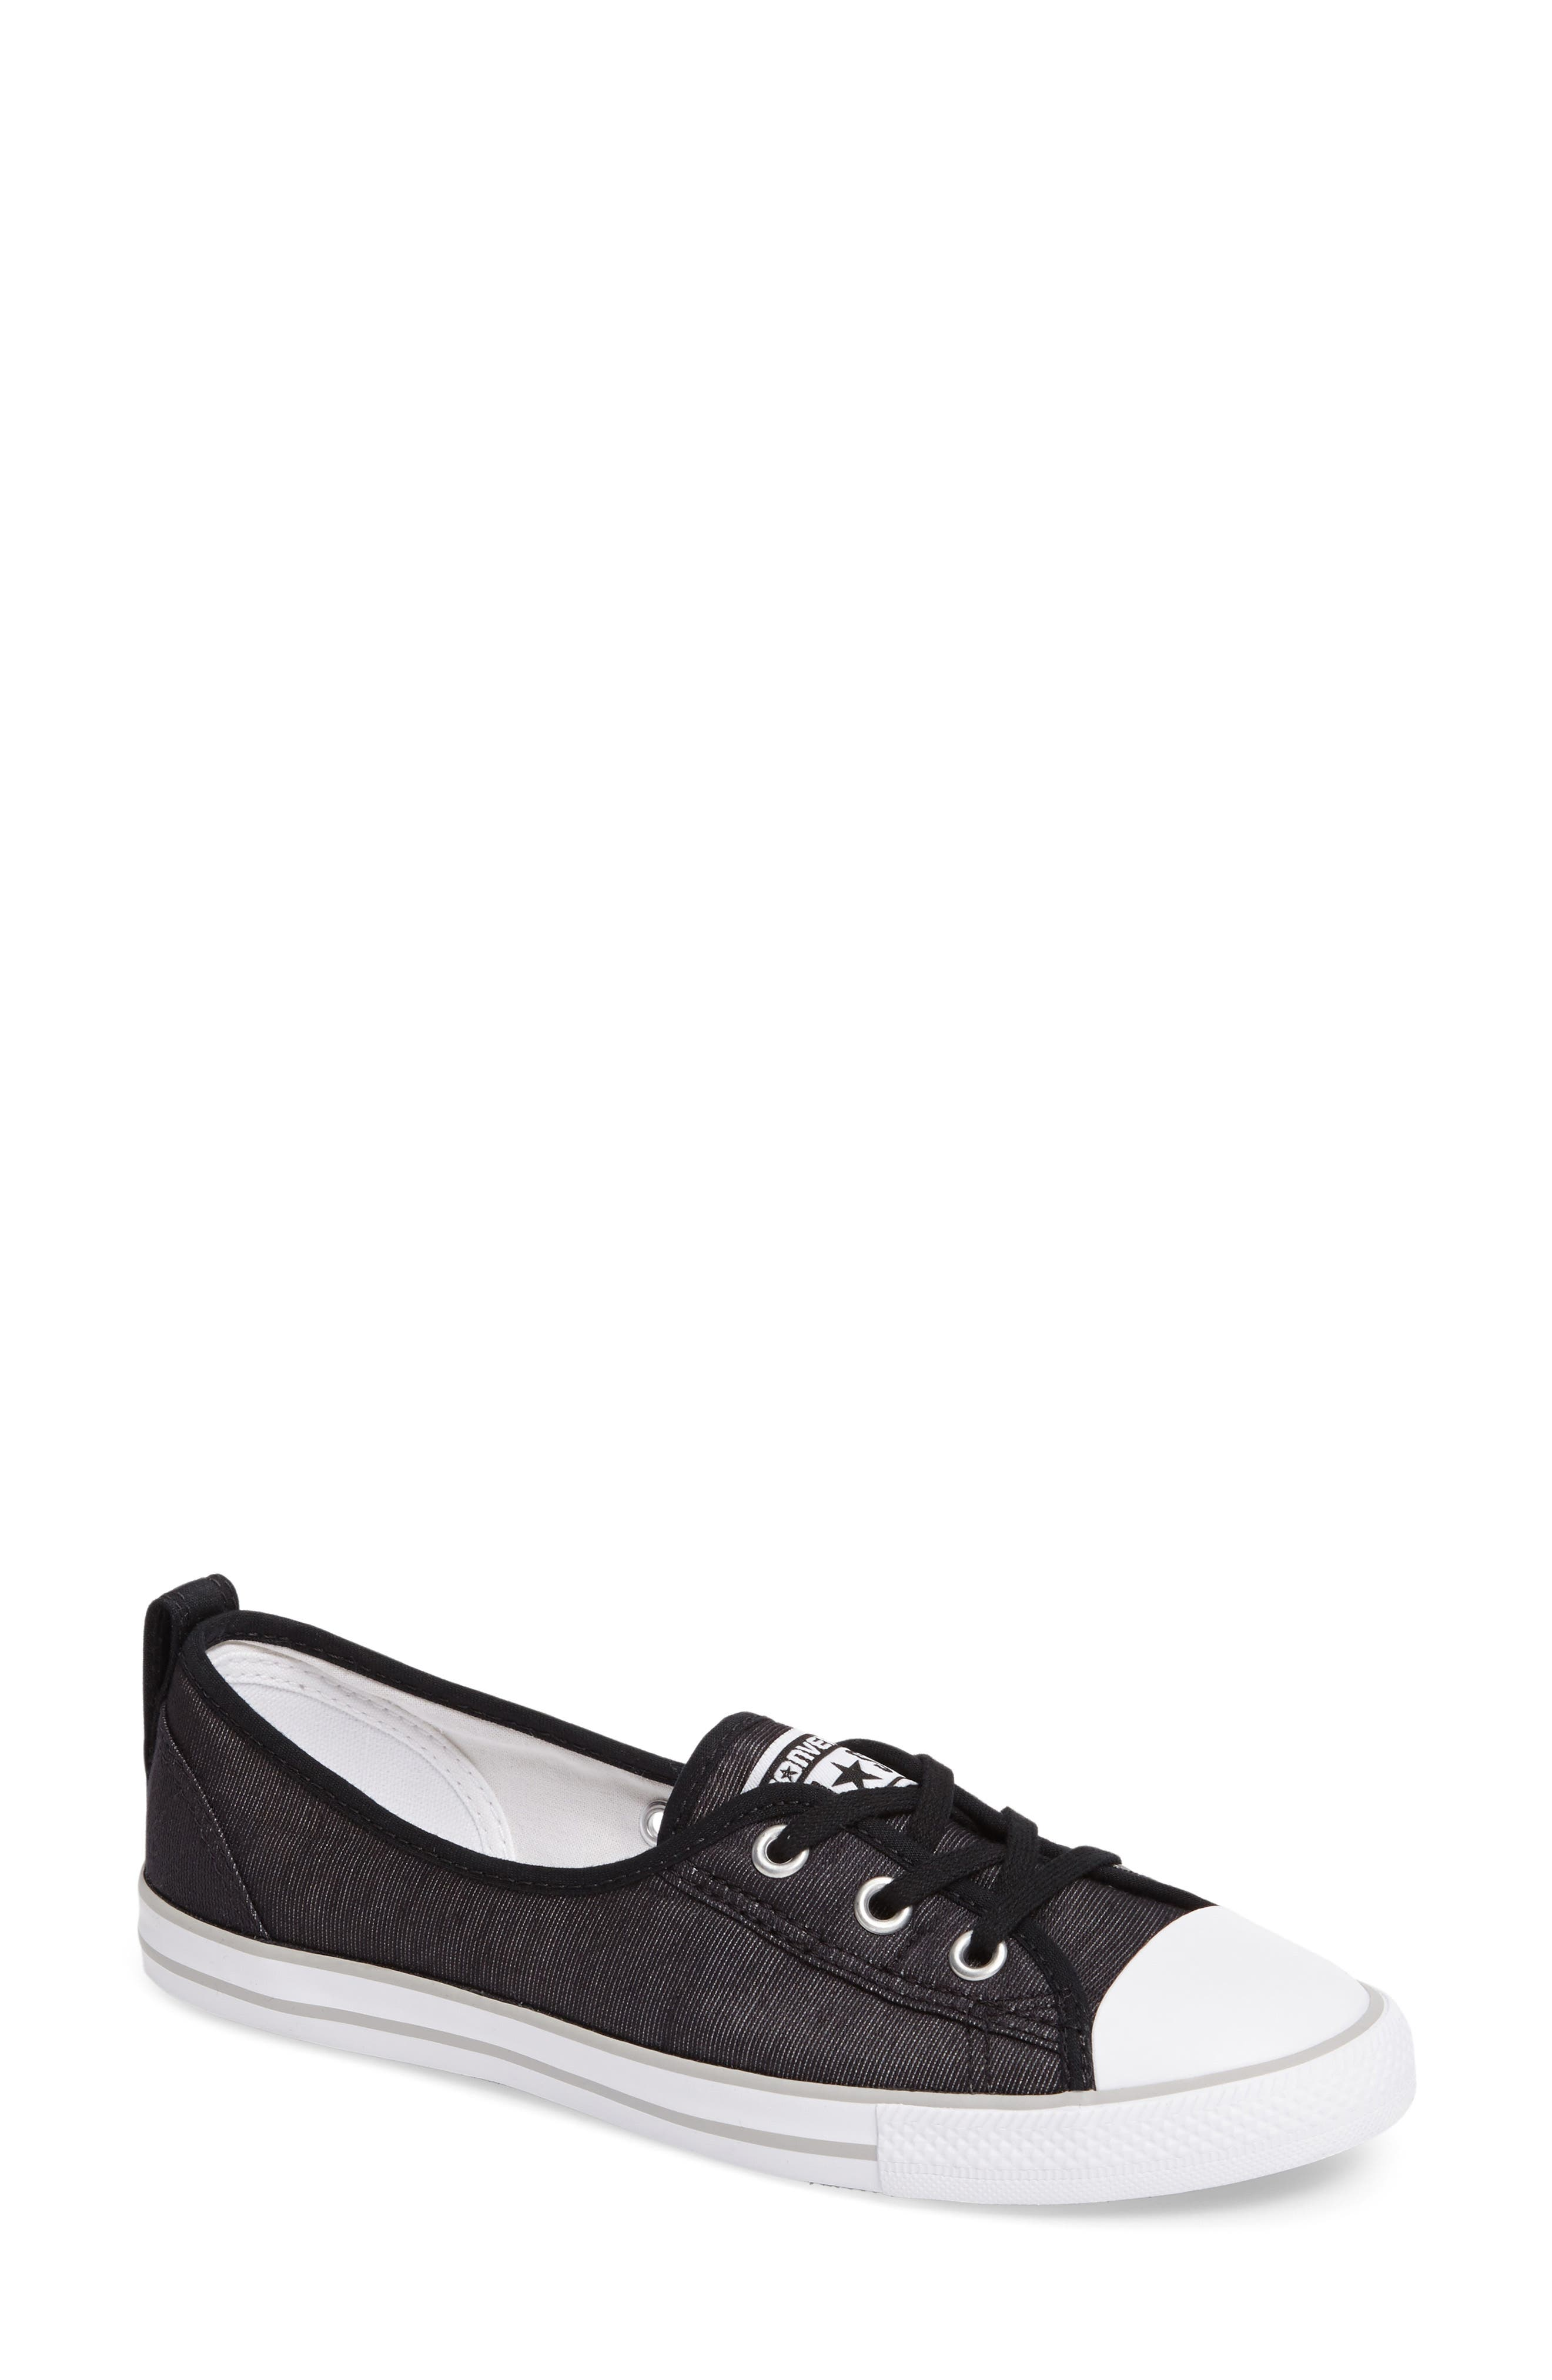 Chuck Taylor<sup>®</sup> All Star<sup>®</sup> Ballet Canvas Sneaker,                             Main thumbnail 1, color,                             Black/ White/ Mouse